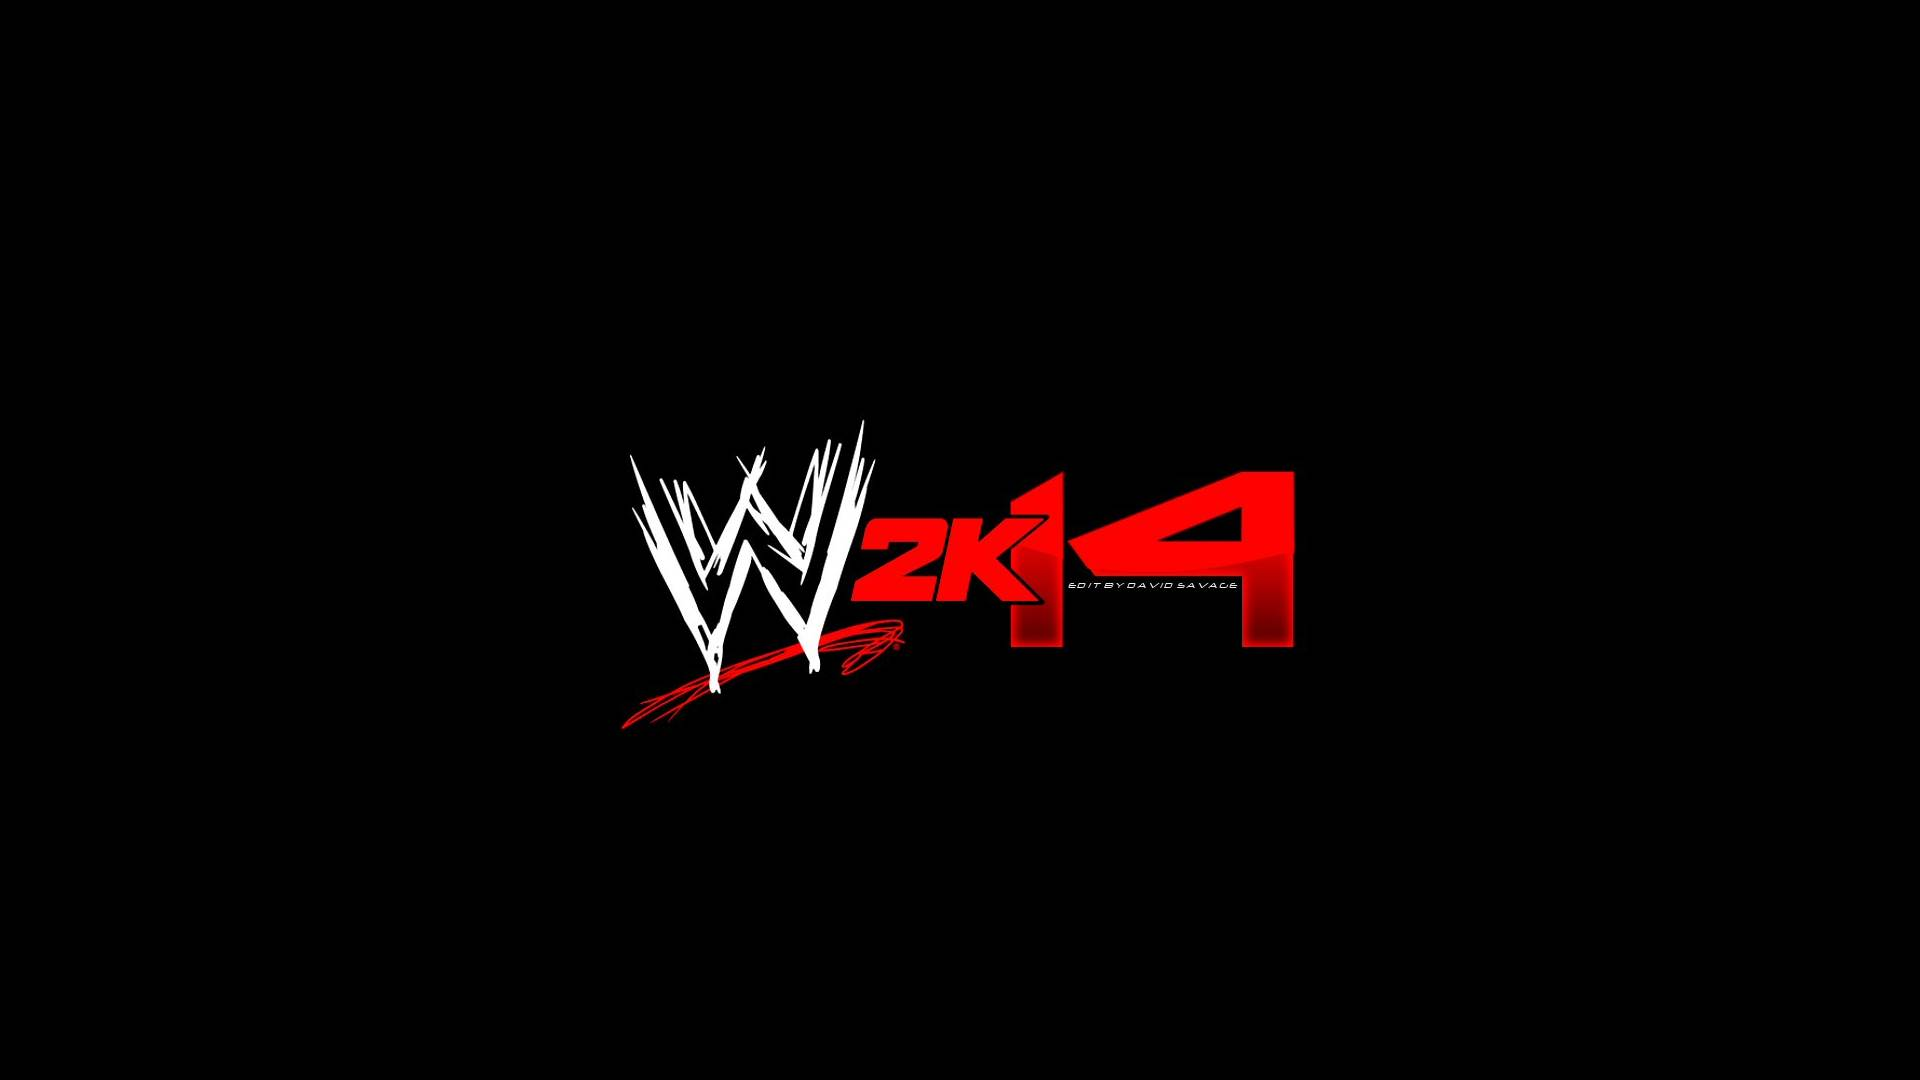 WWE 2K14 Logo Exclusive HD Wallpapers 5641 1920x1080